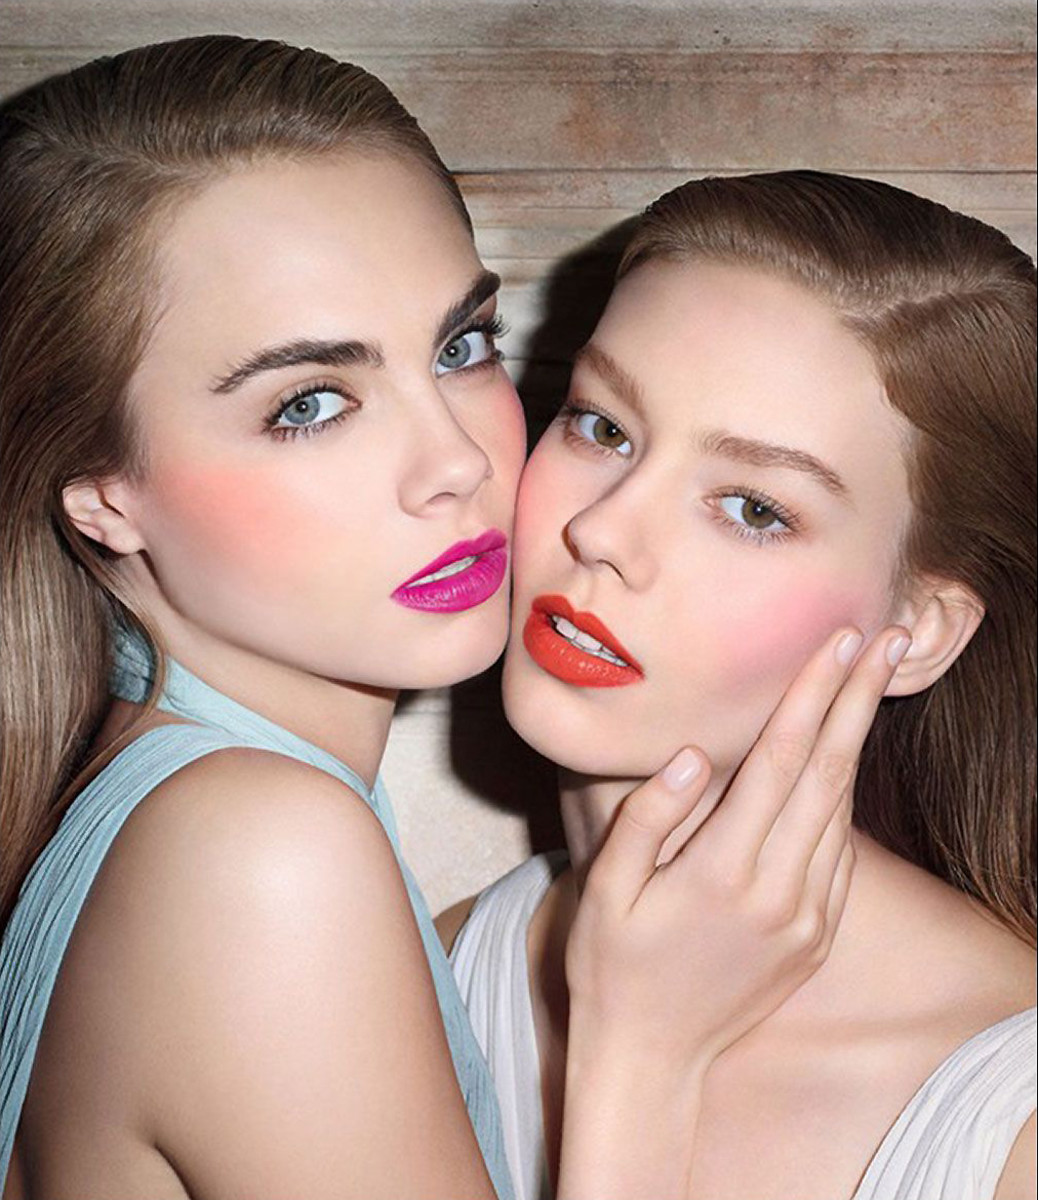 YSL Baby Doll Kiss & Blush Cara Delvingne_aka YSL Babydoll Kiss and Blush promo